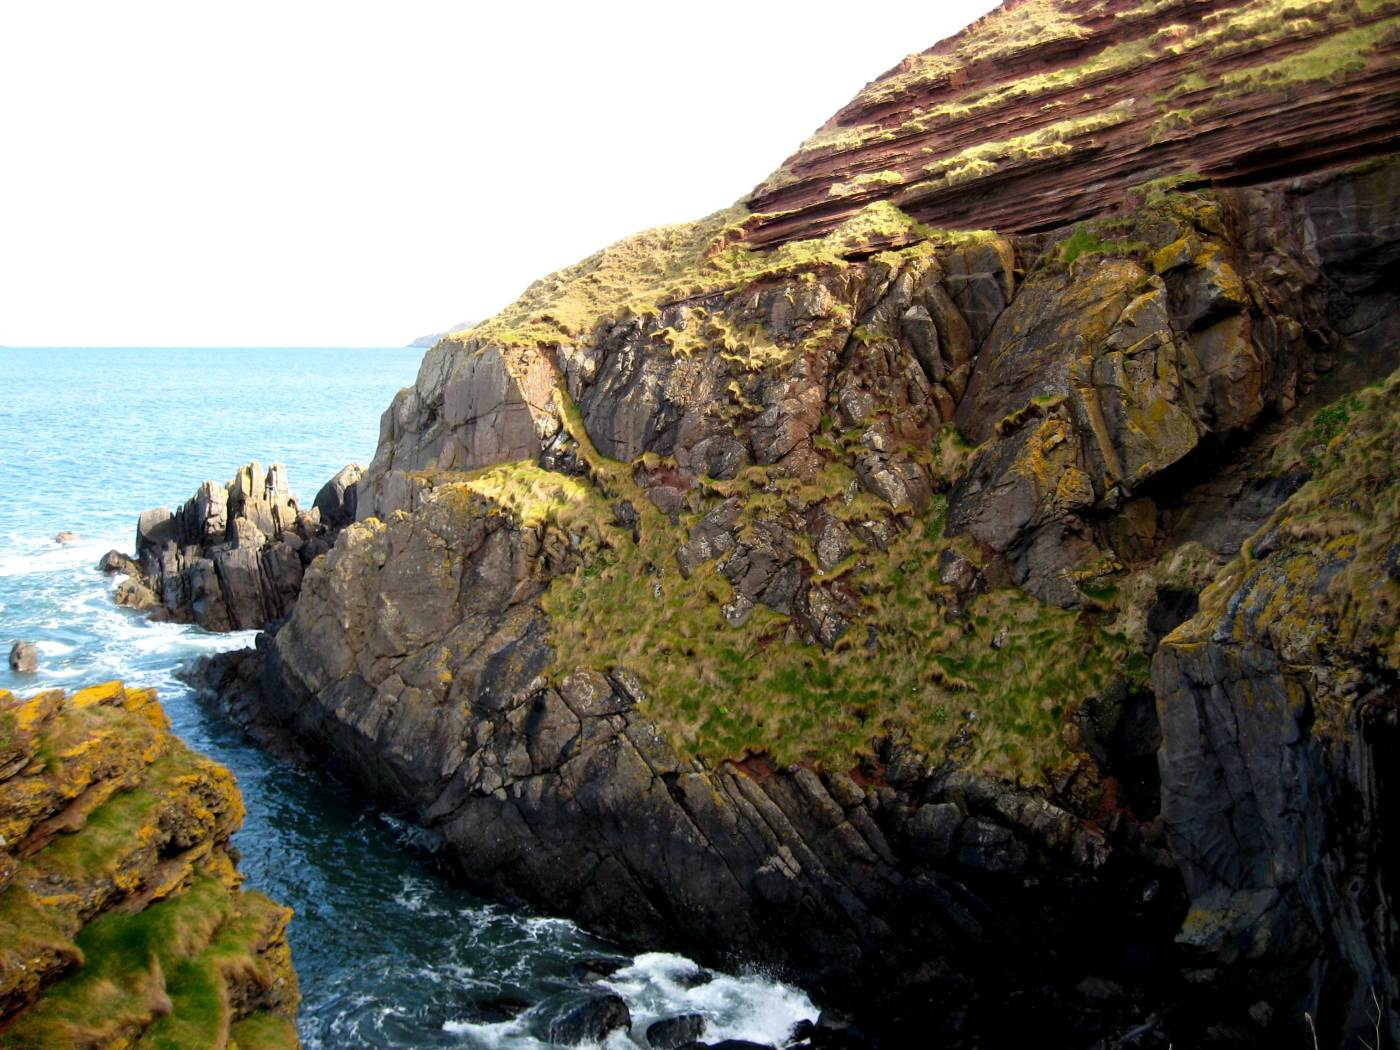 Siccar Point, Scotland - Horizontal red sandstone bedding overlaying vertically bedded  greywacke. (Source: Dave Souza at Wikipedia)